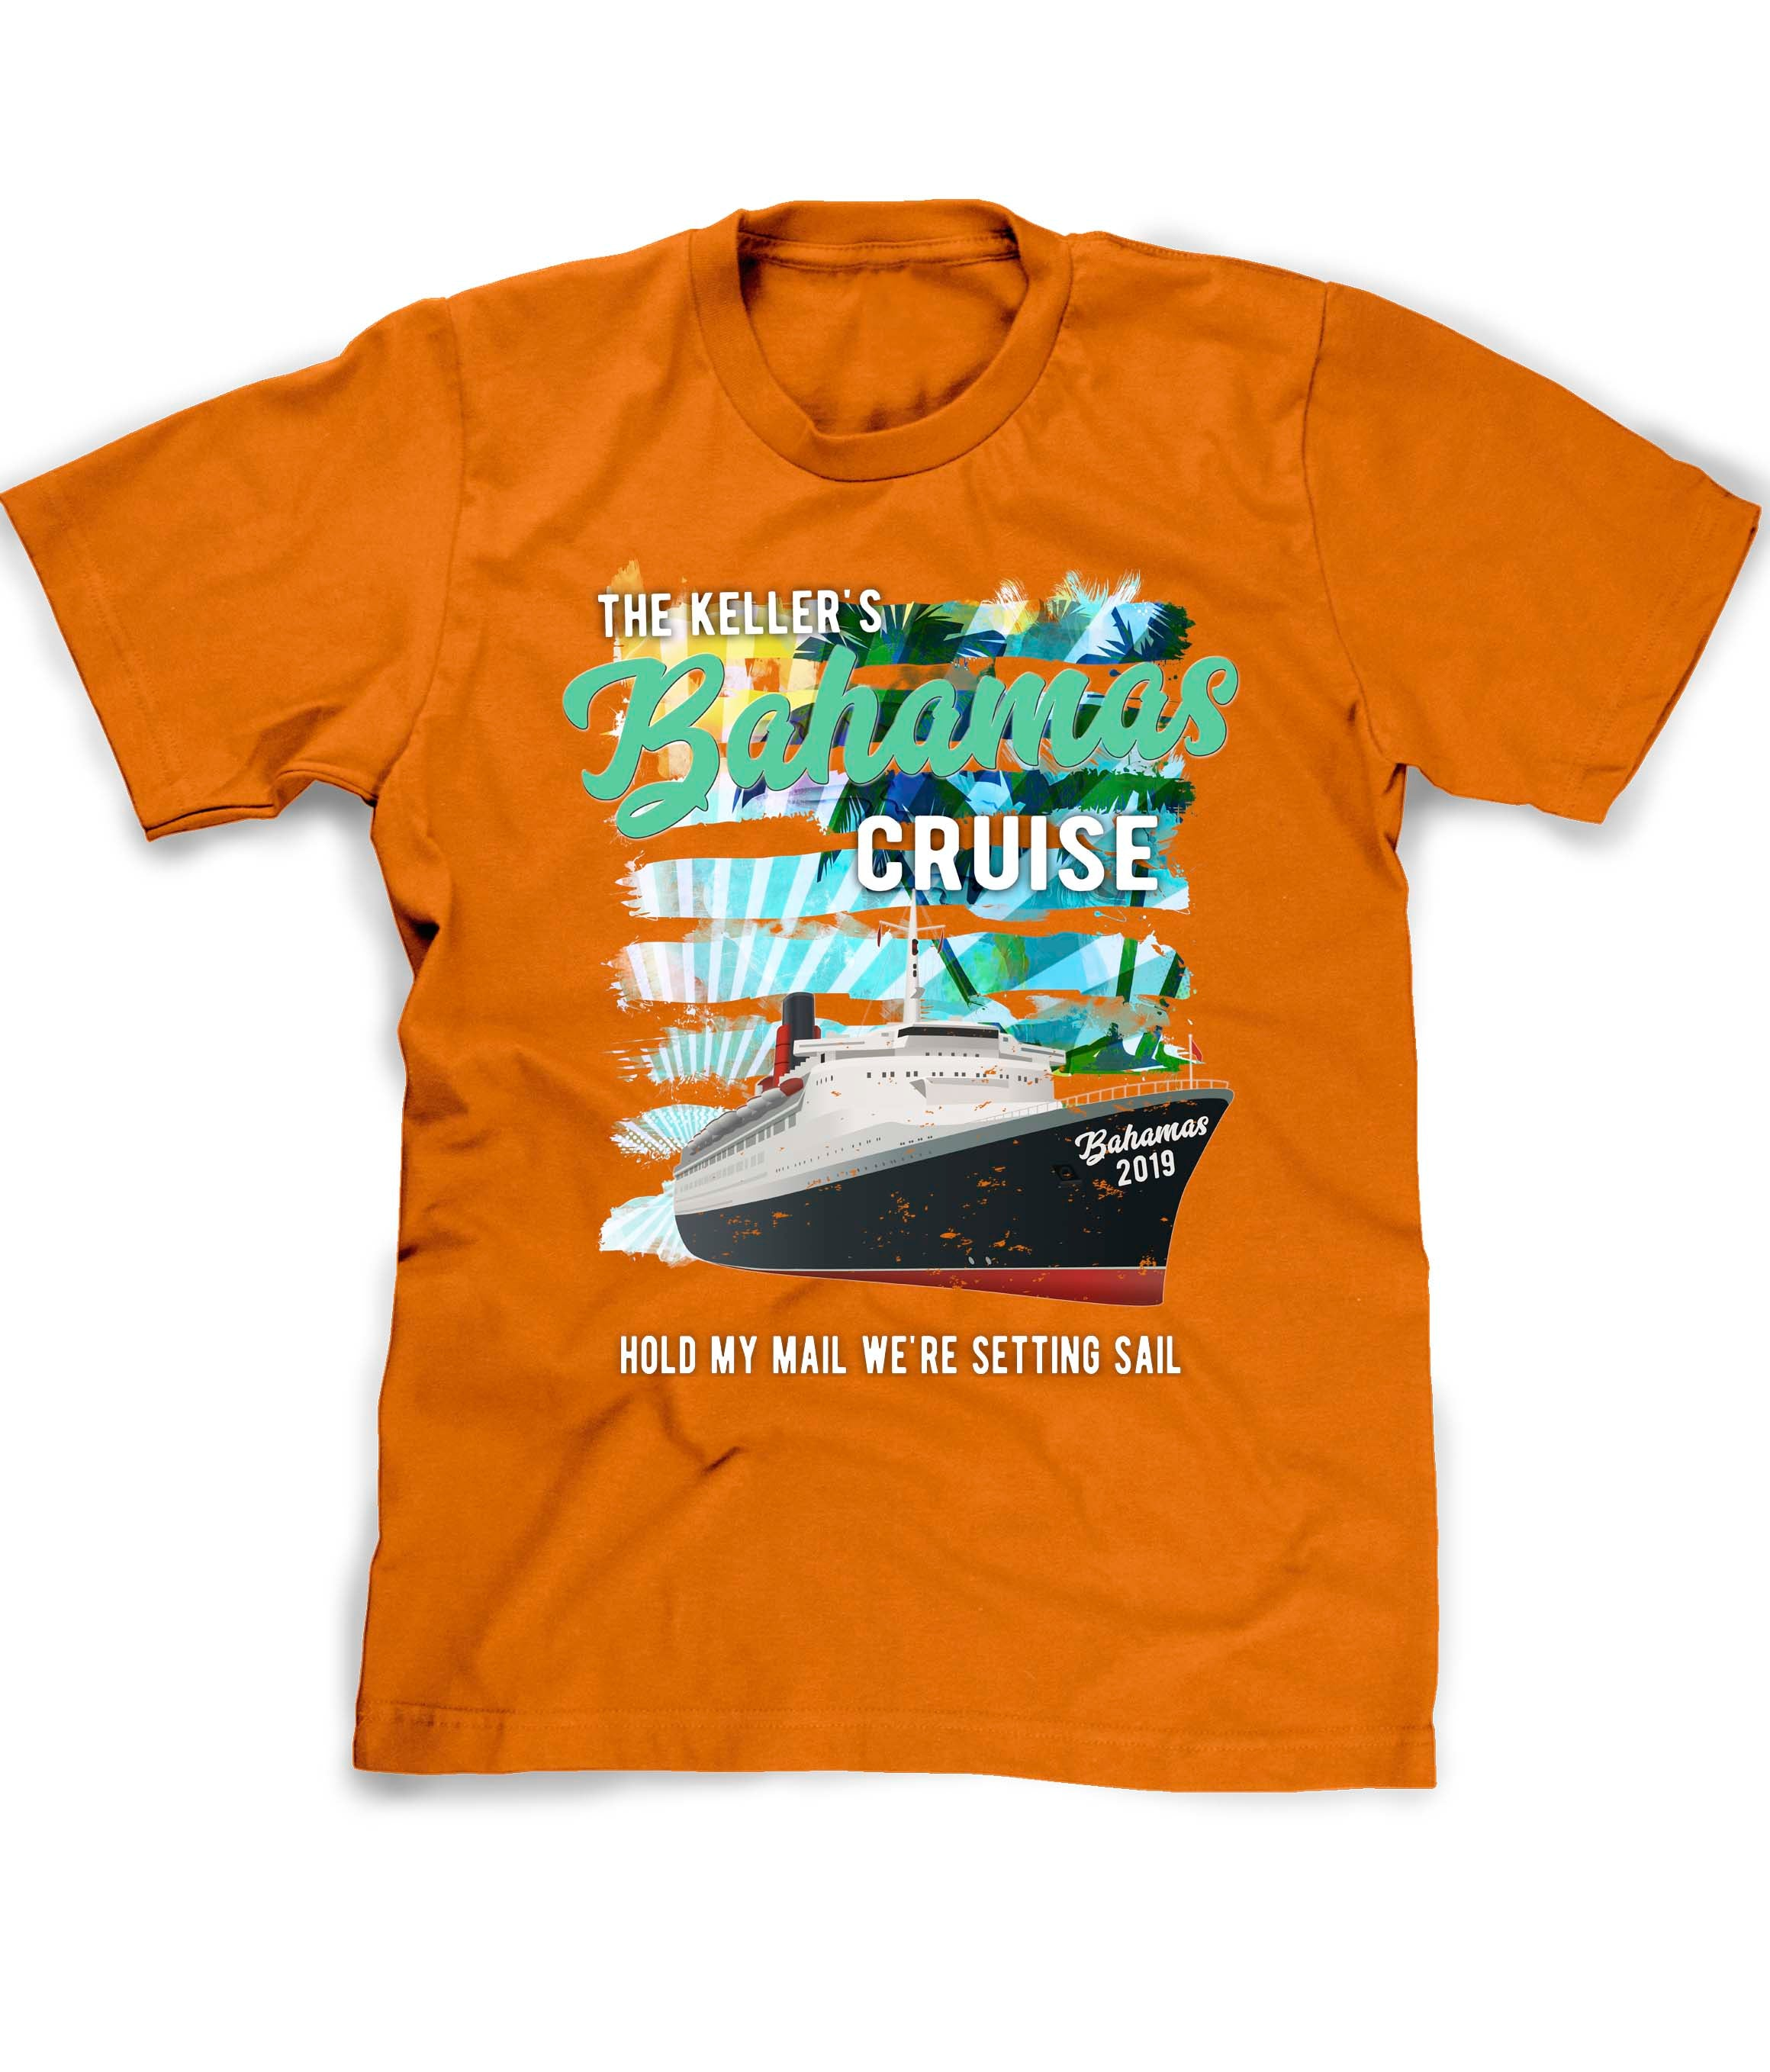 Bahamas Cruise tee shirt in orange